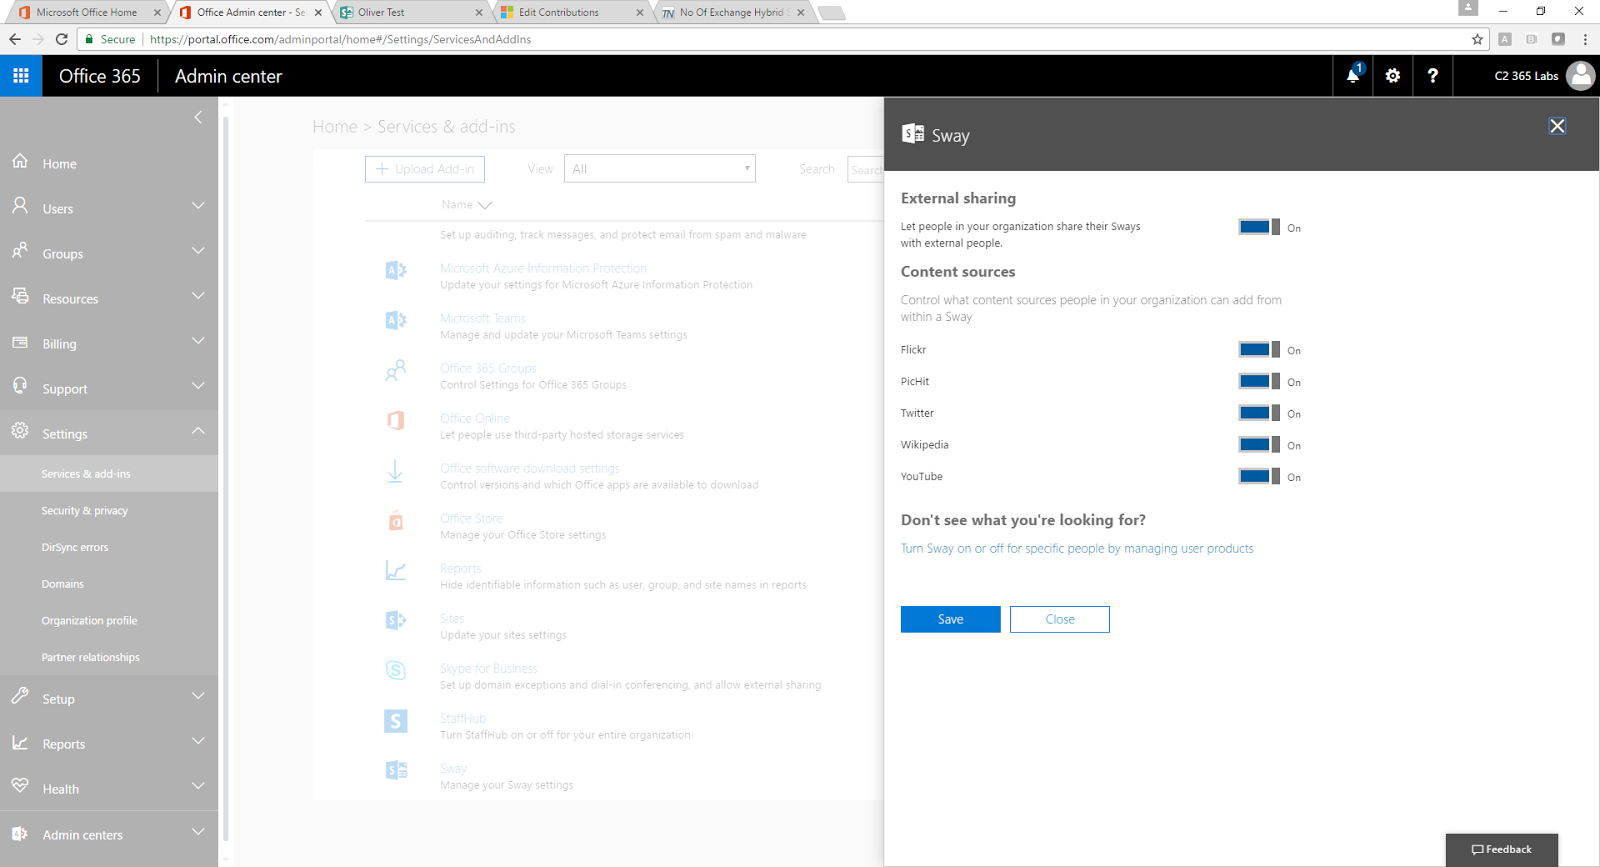 Wave16 com: Utilizing Sway instead of Office for document creation